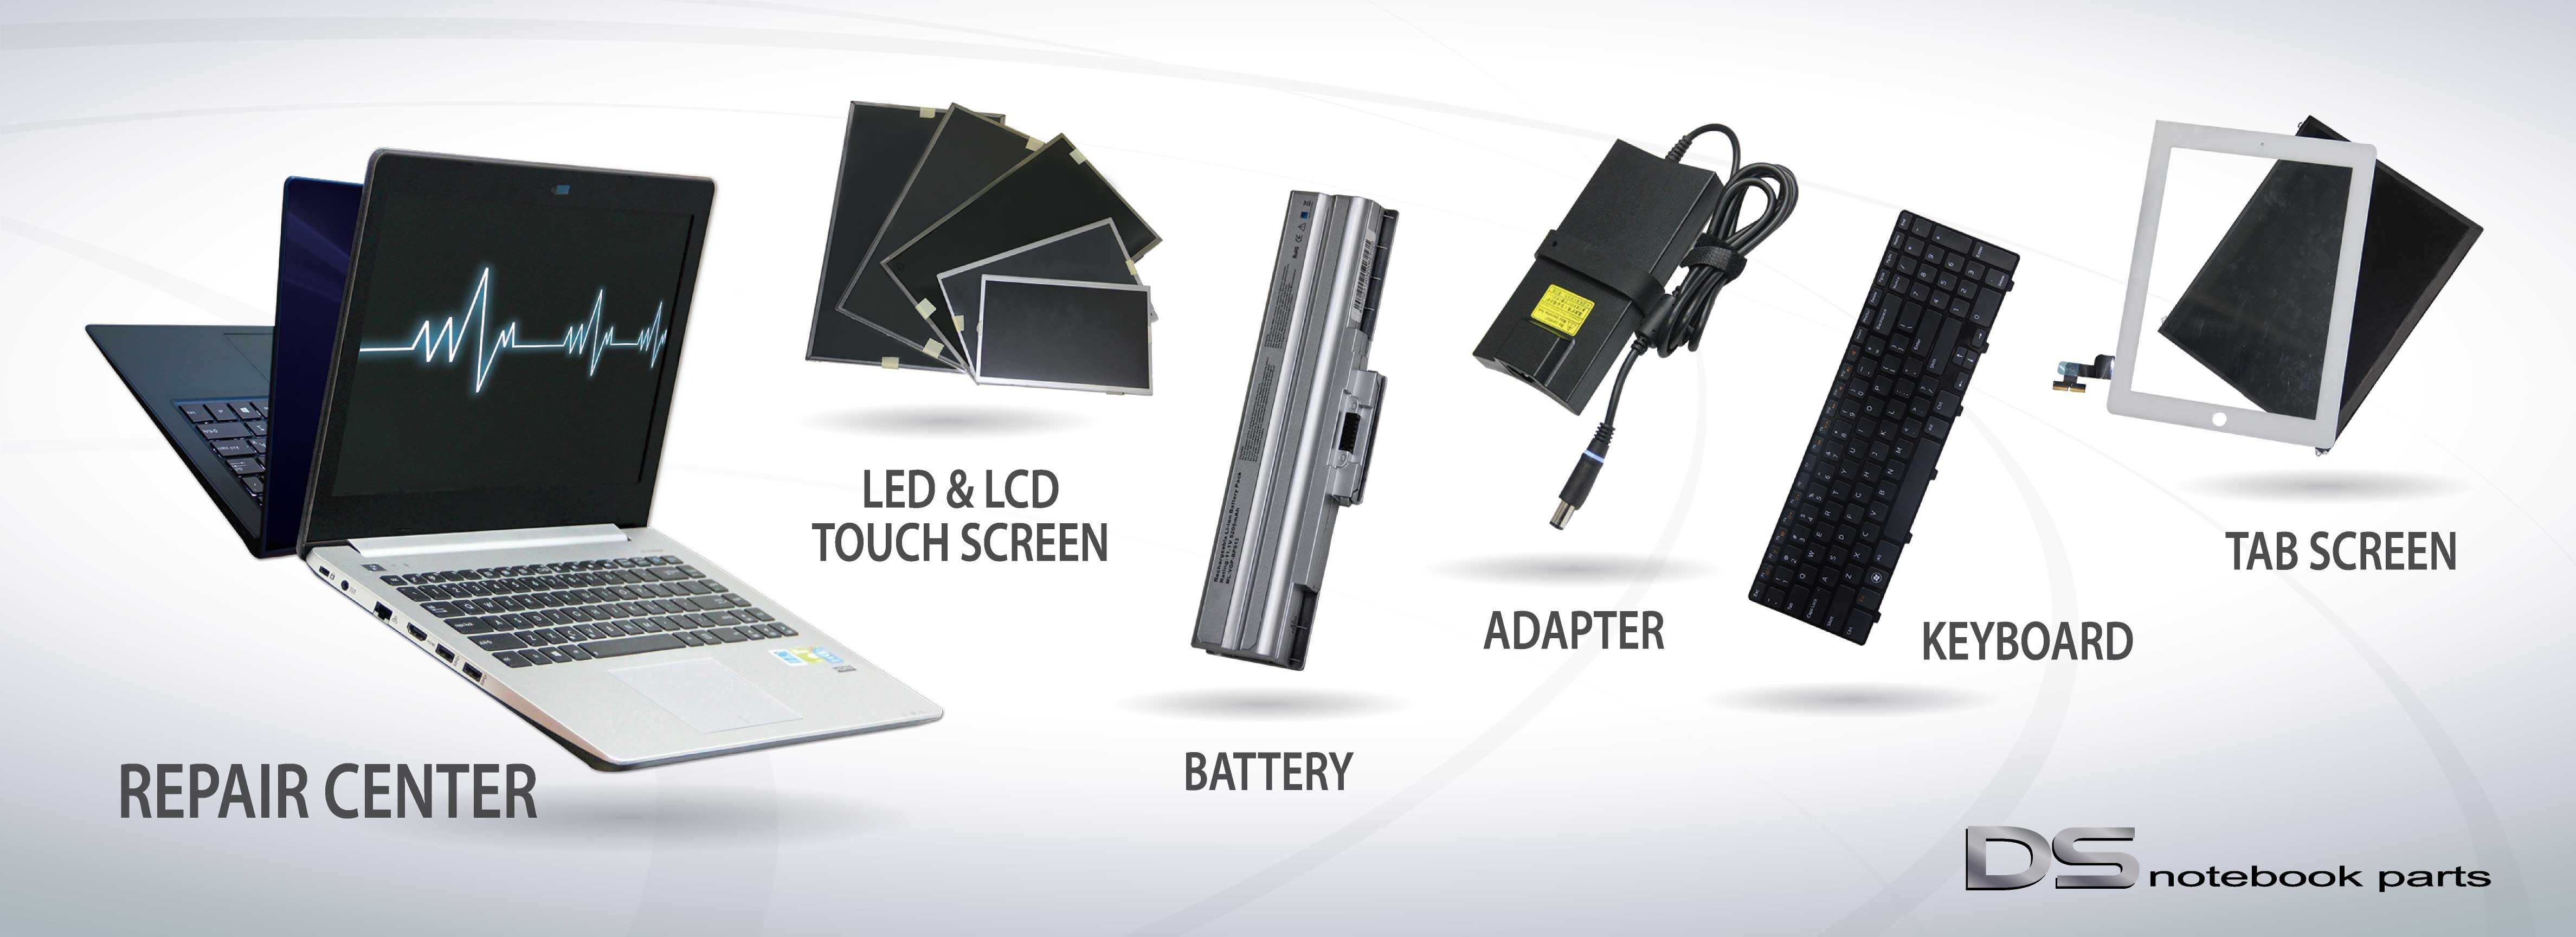 Ds Notebook Accessories Sdn Bhd Acer Aspire Laptop Parts Diagram Battery